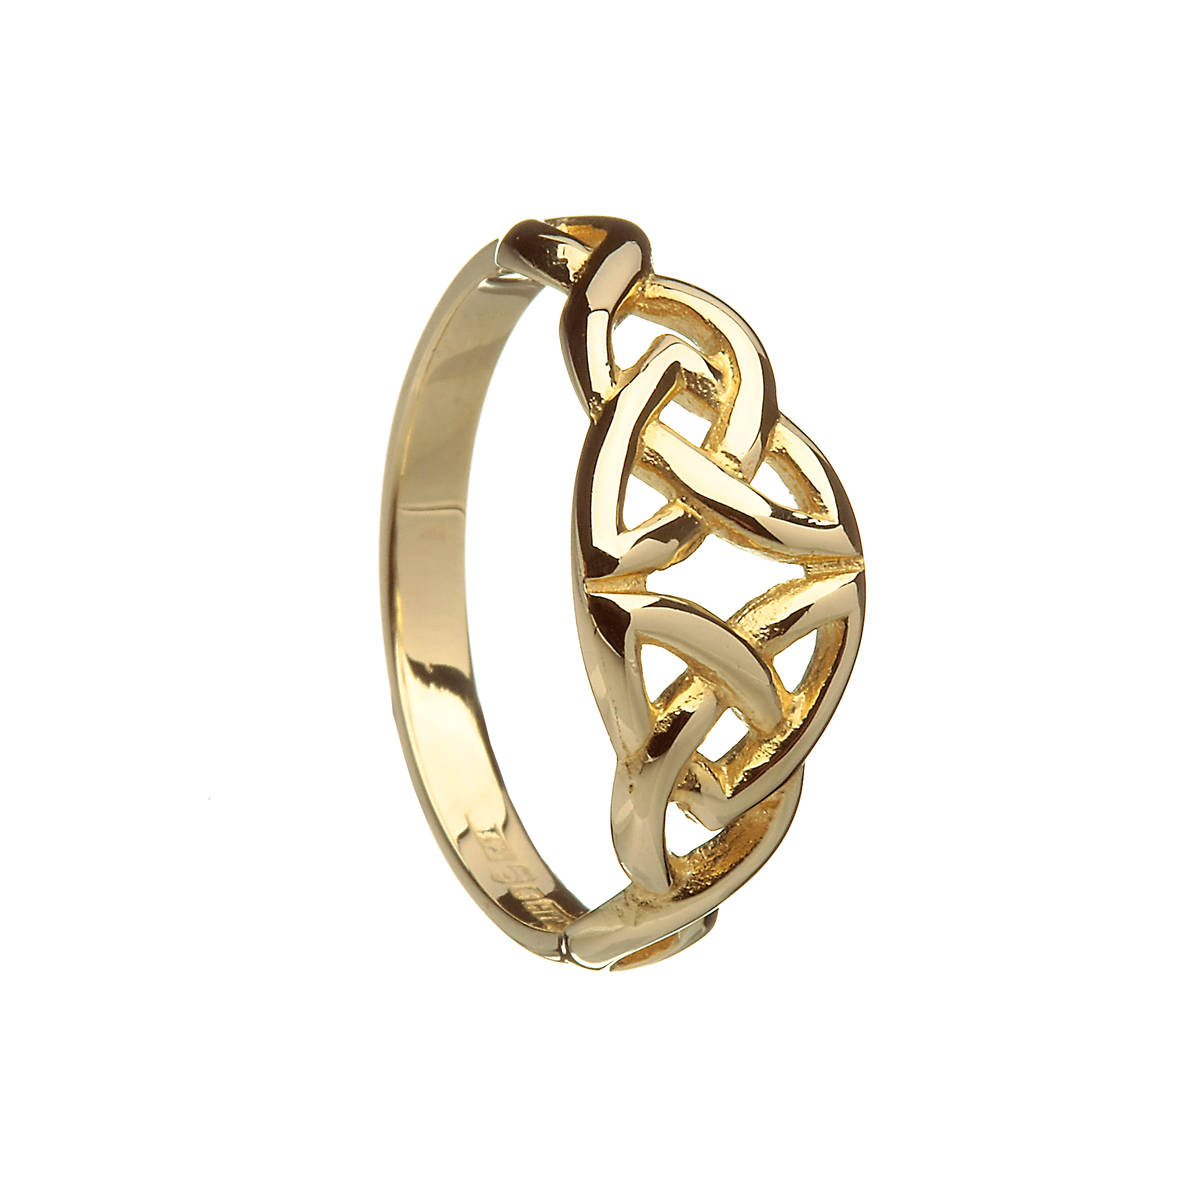 10 carat yellow gold ladies celtic knot dress ring which is unique in it's design and very comfortable to wear.It's style will generate favourable comment and interest and it symbolises continuity of friendship with no end.